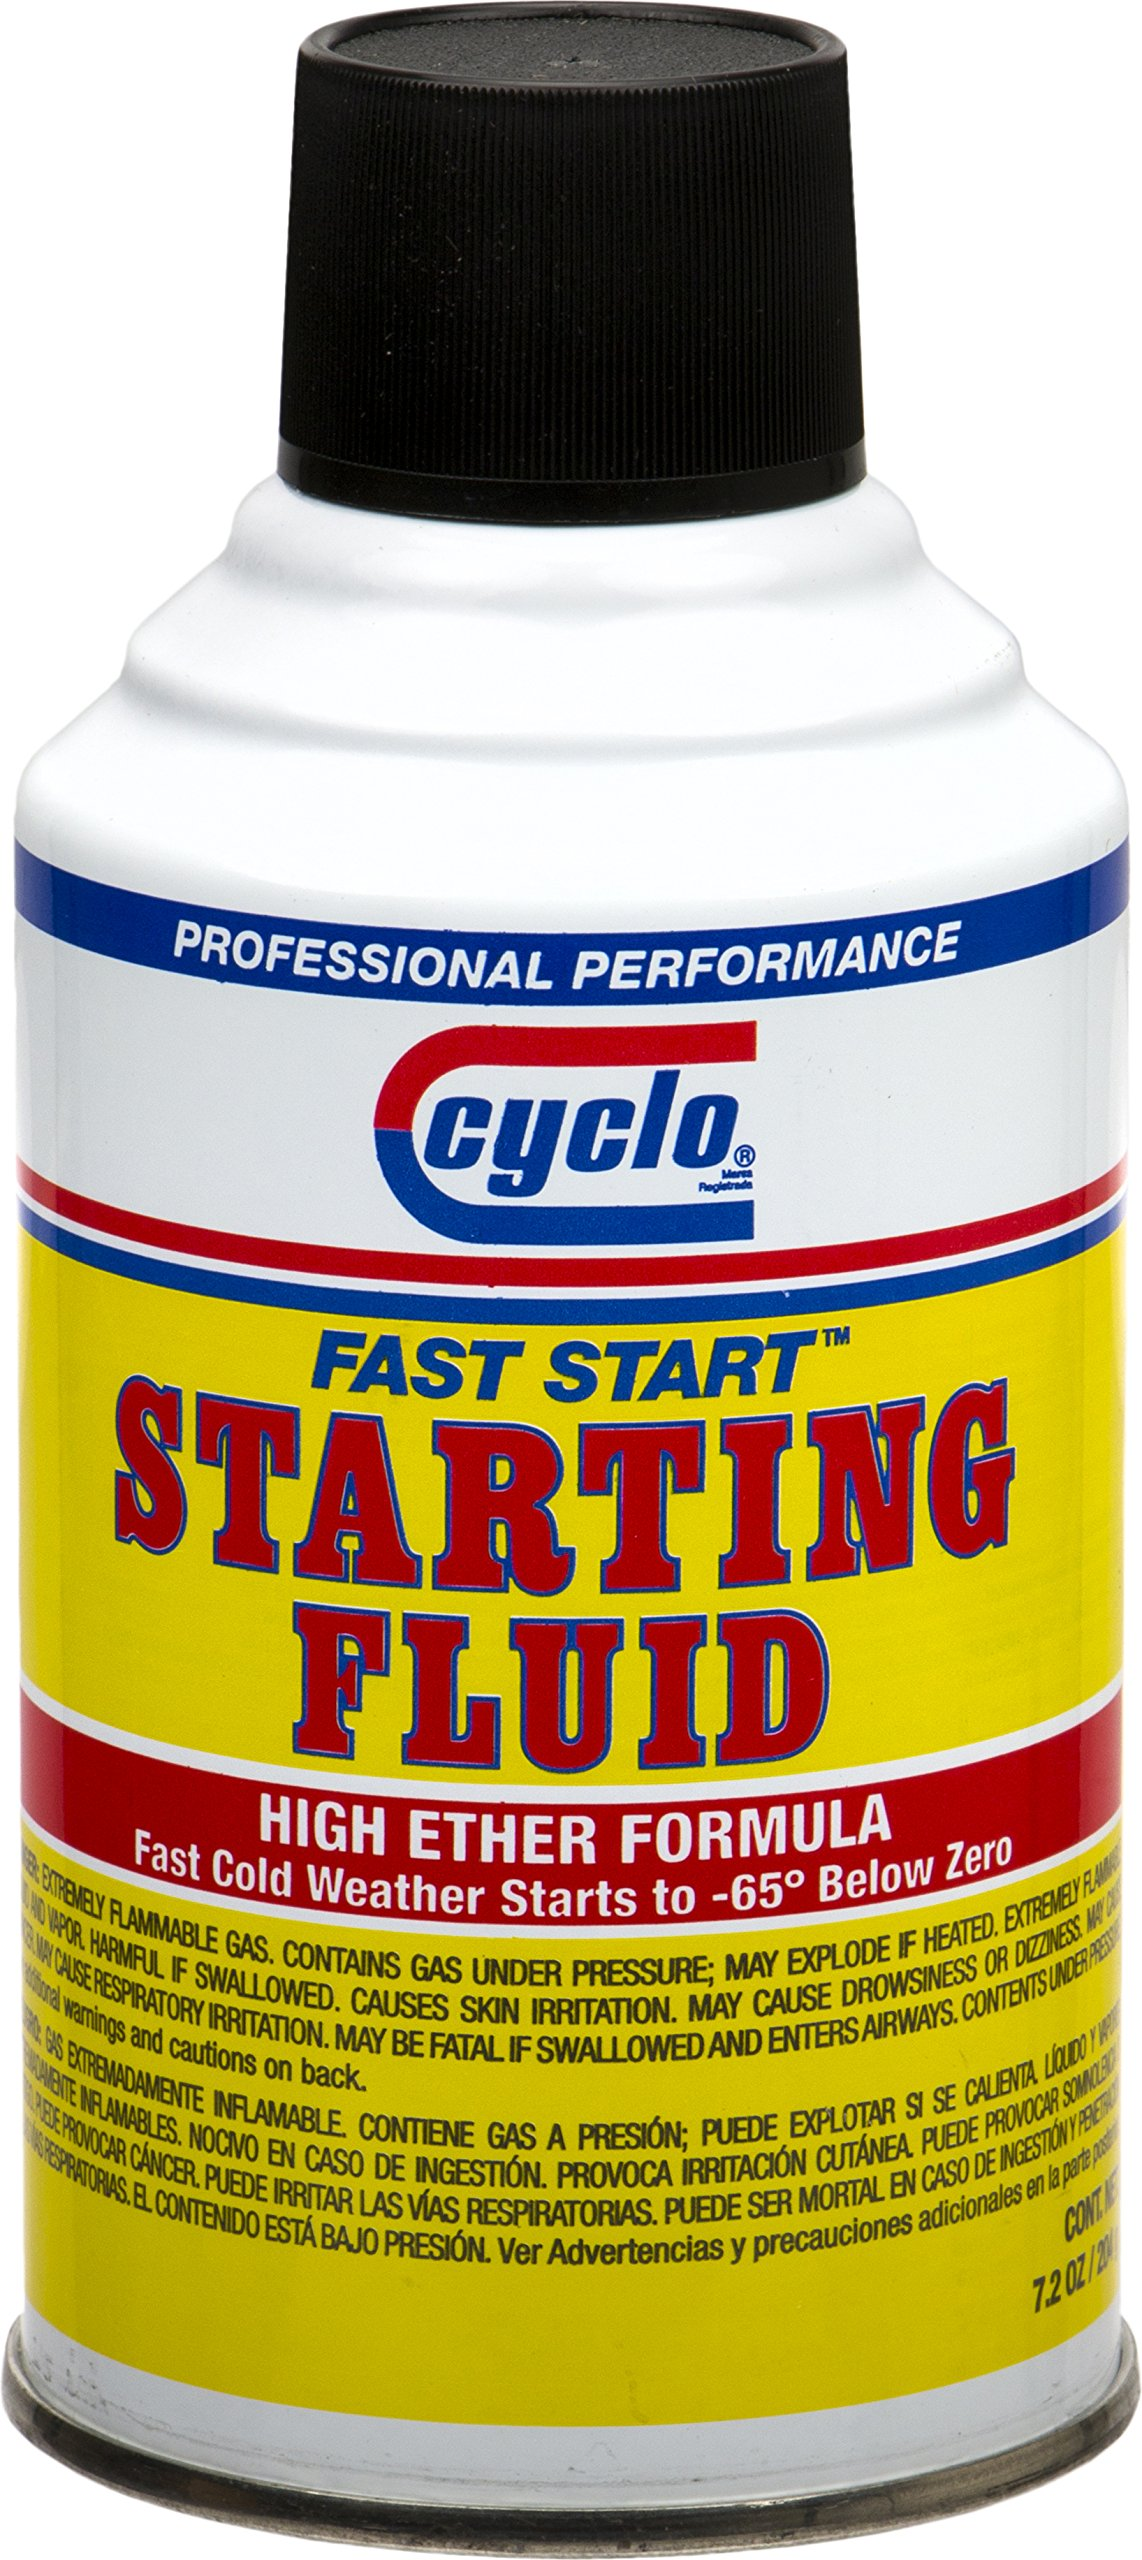 Niteo Cyclo Fast Start Starting Fluid, High Ether Formula, 7.2 fl oz, Case of 12 by Niteo